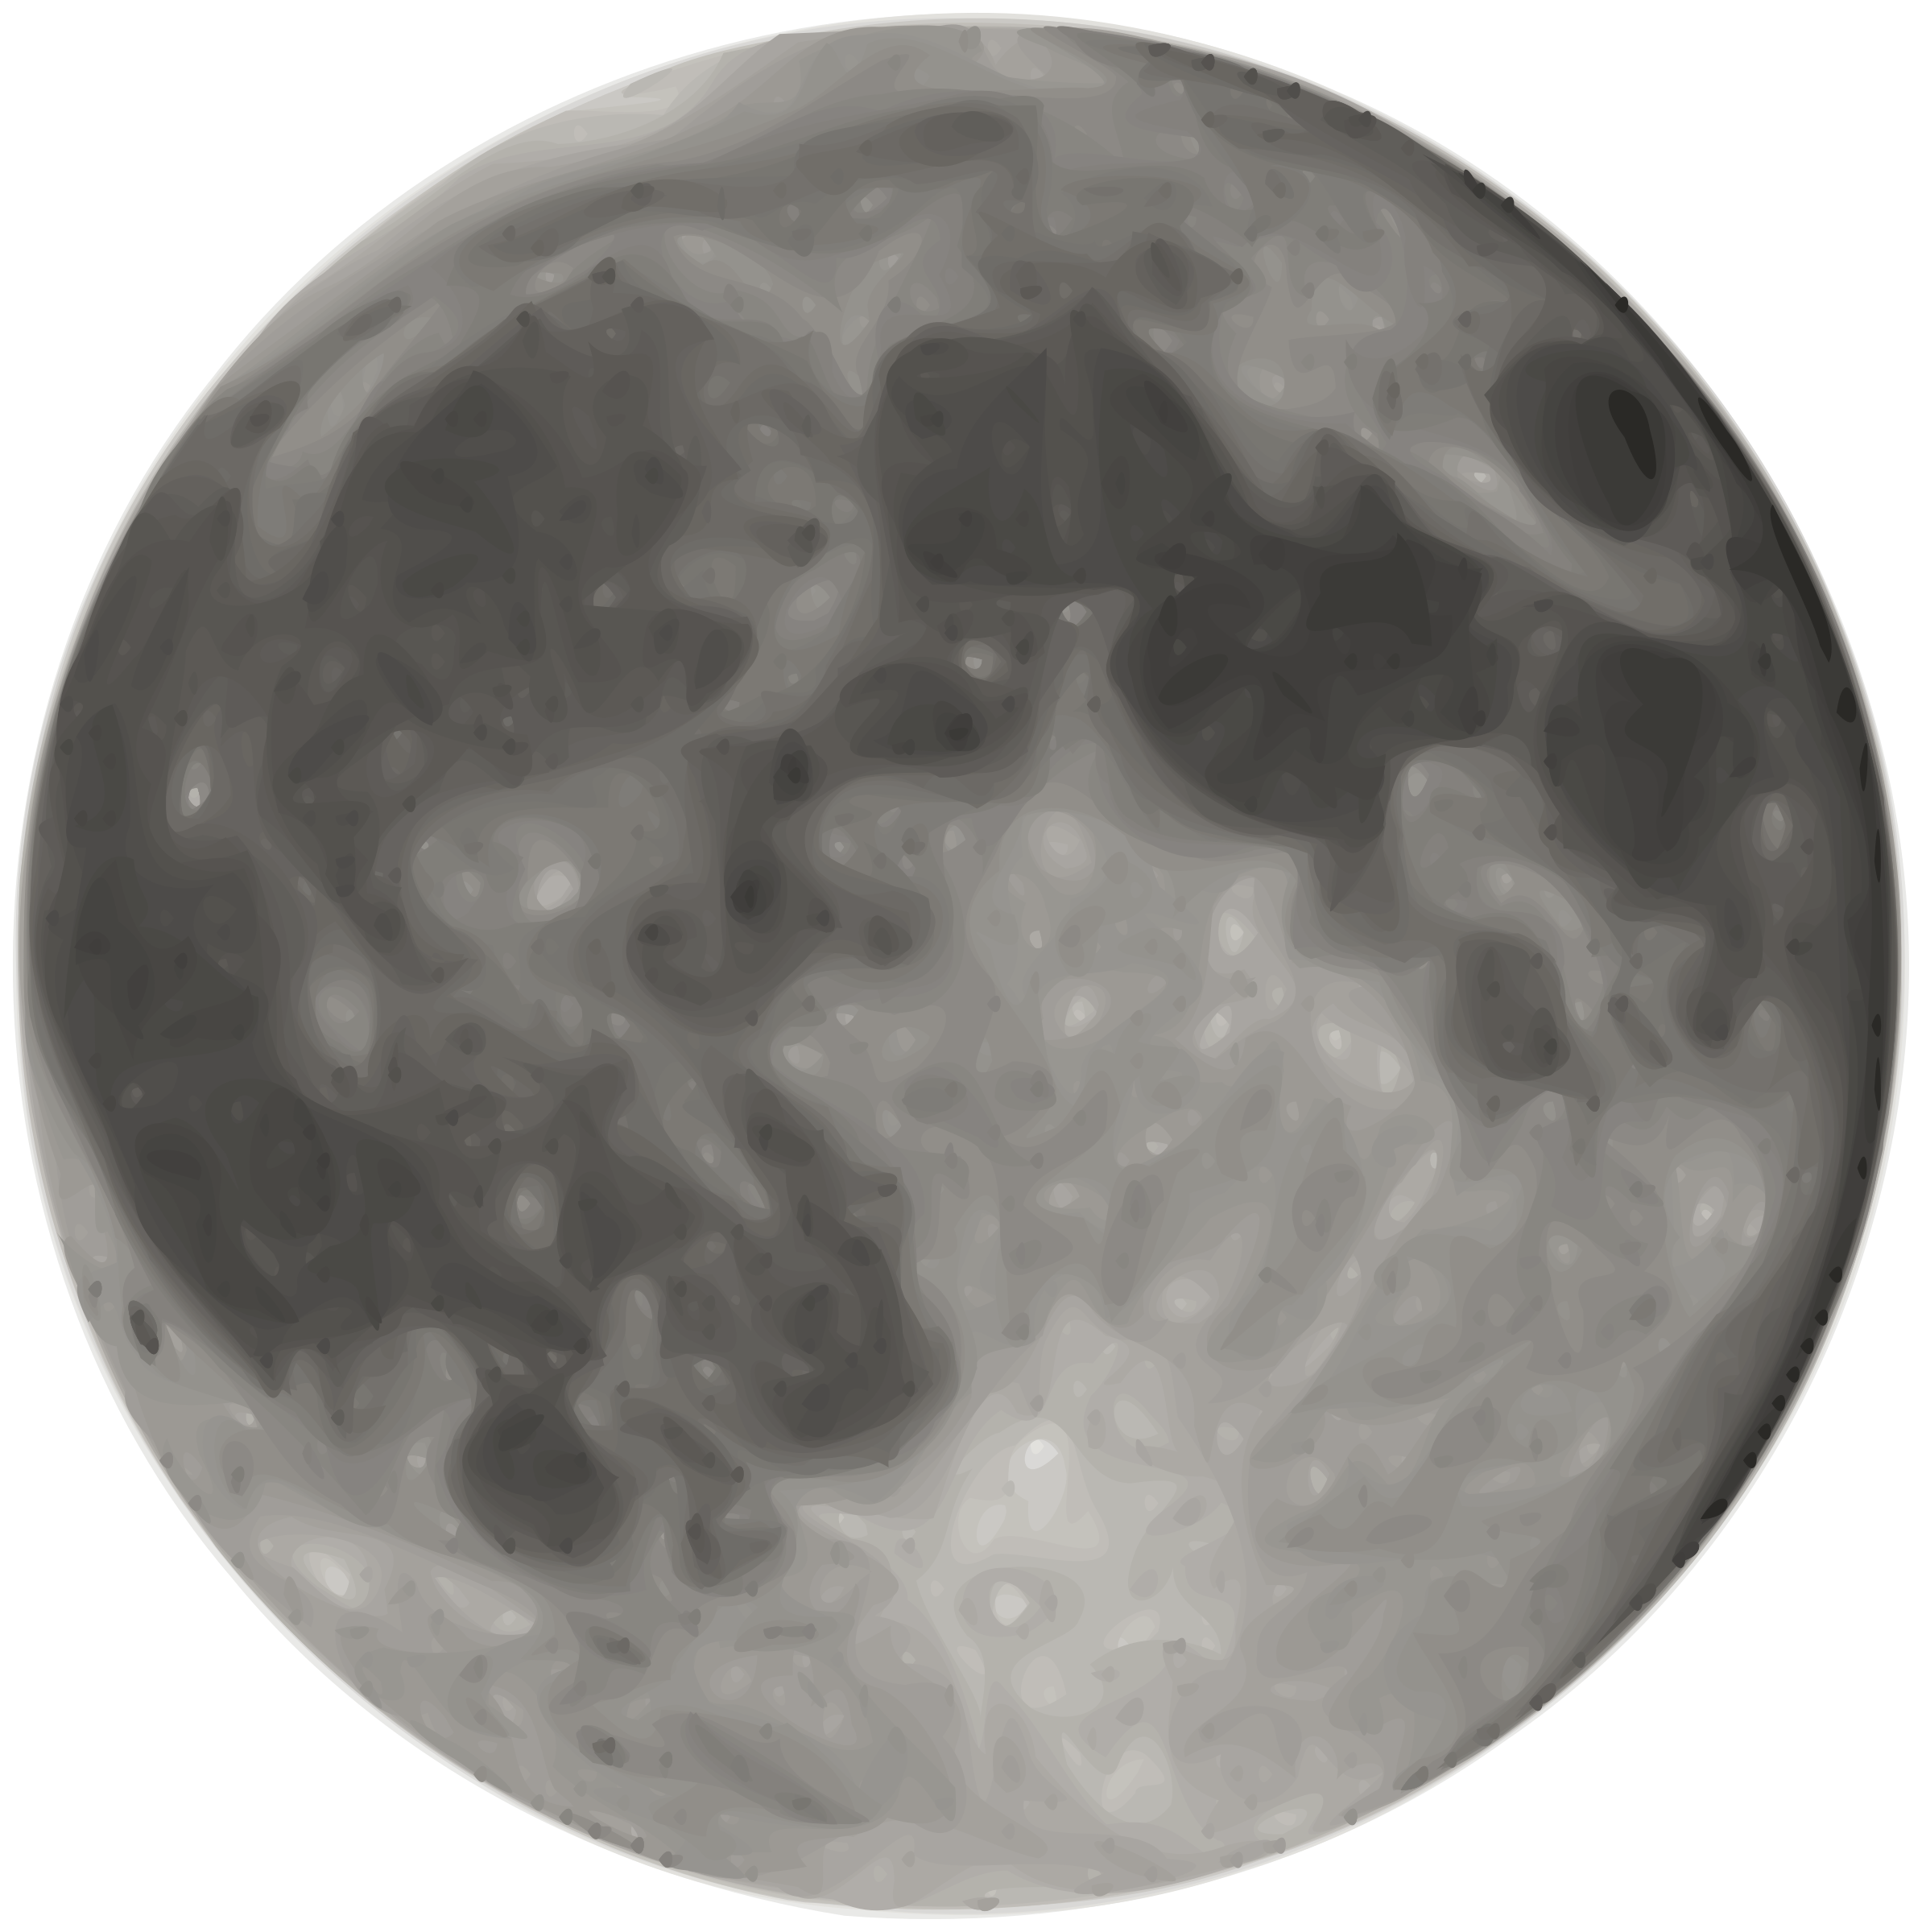 Big image png. Planet clipart full moon